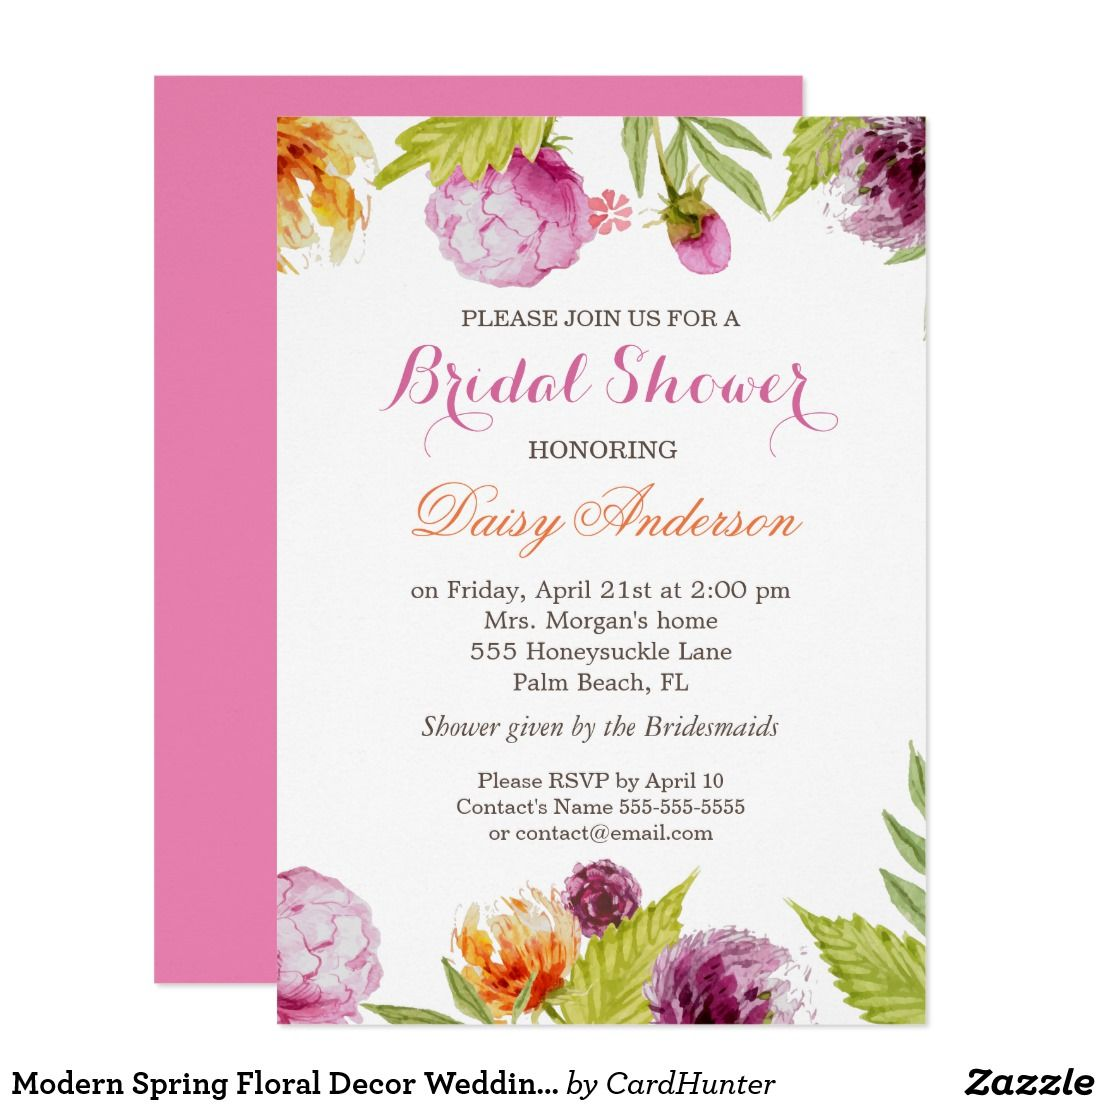 Modern Spring Floral Decor Wedding Bridal Shower Card